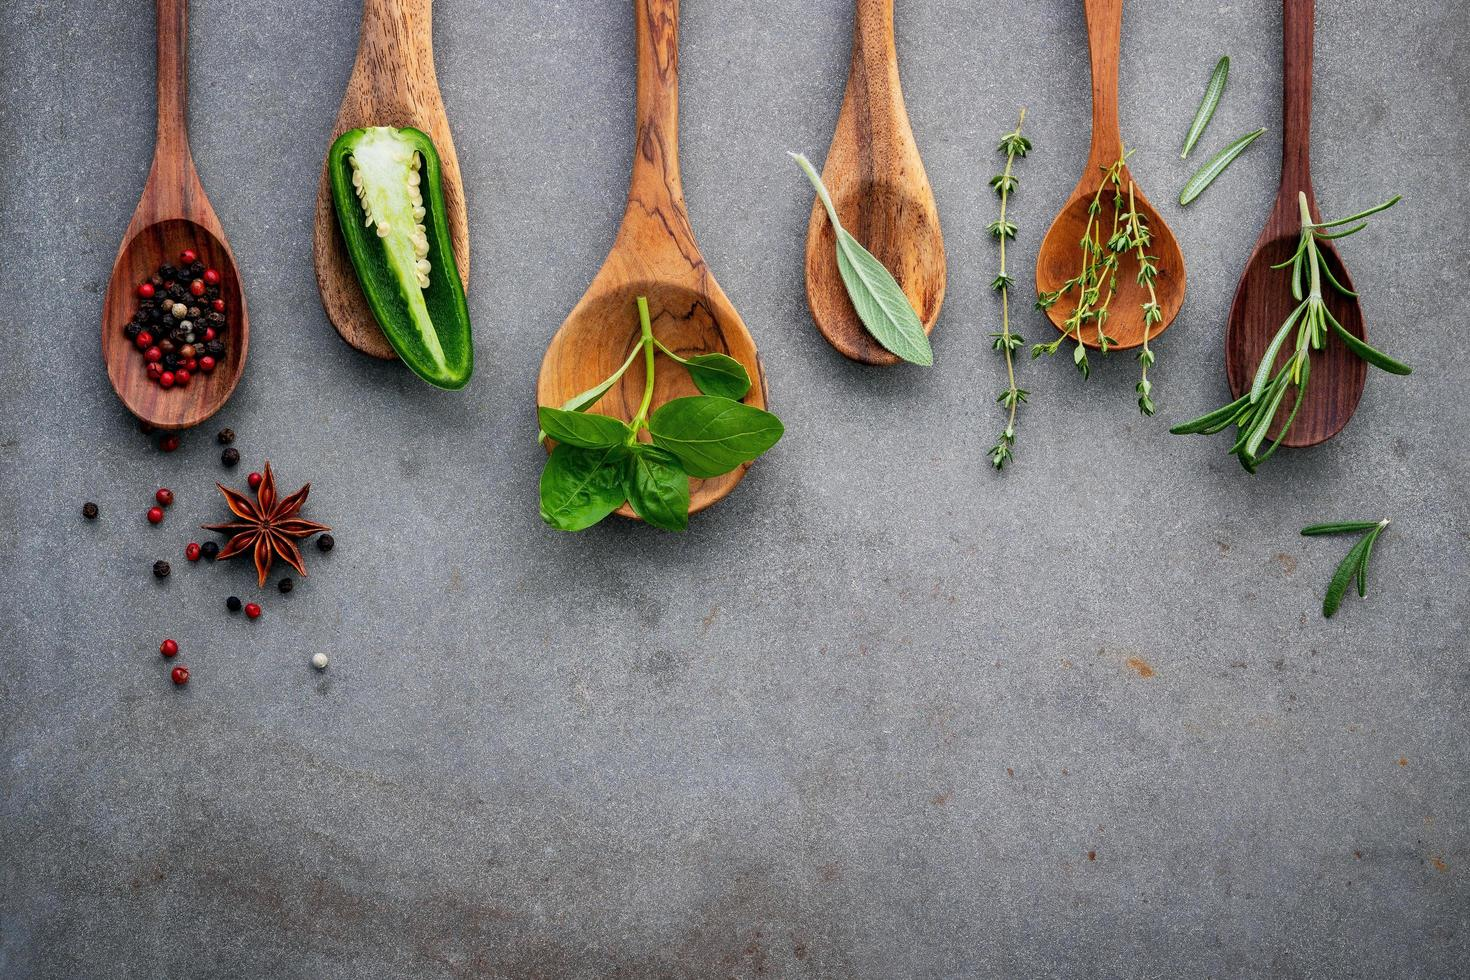 Herbs and spices in spoons on a gray background photo